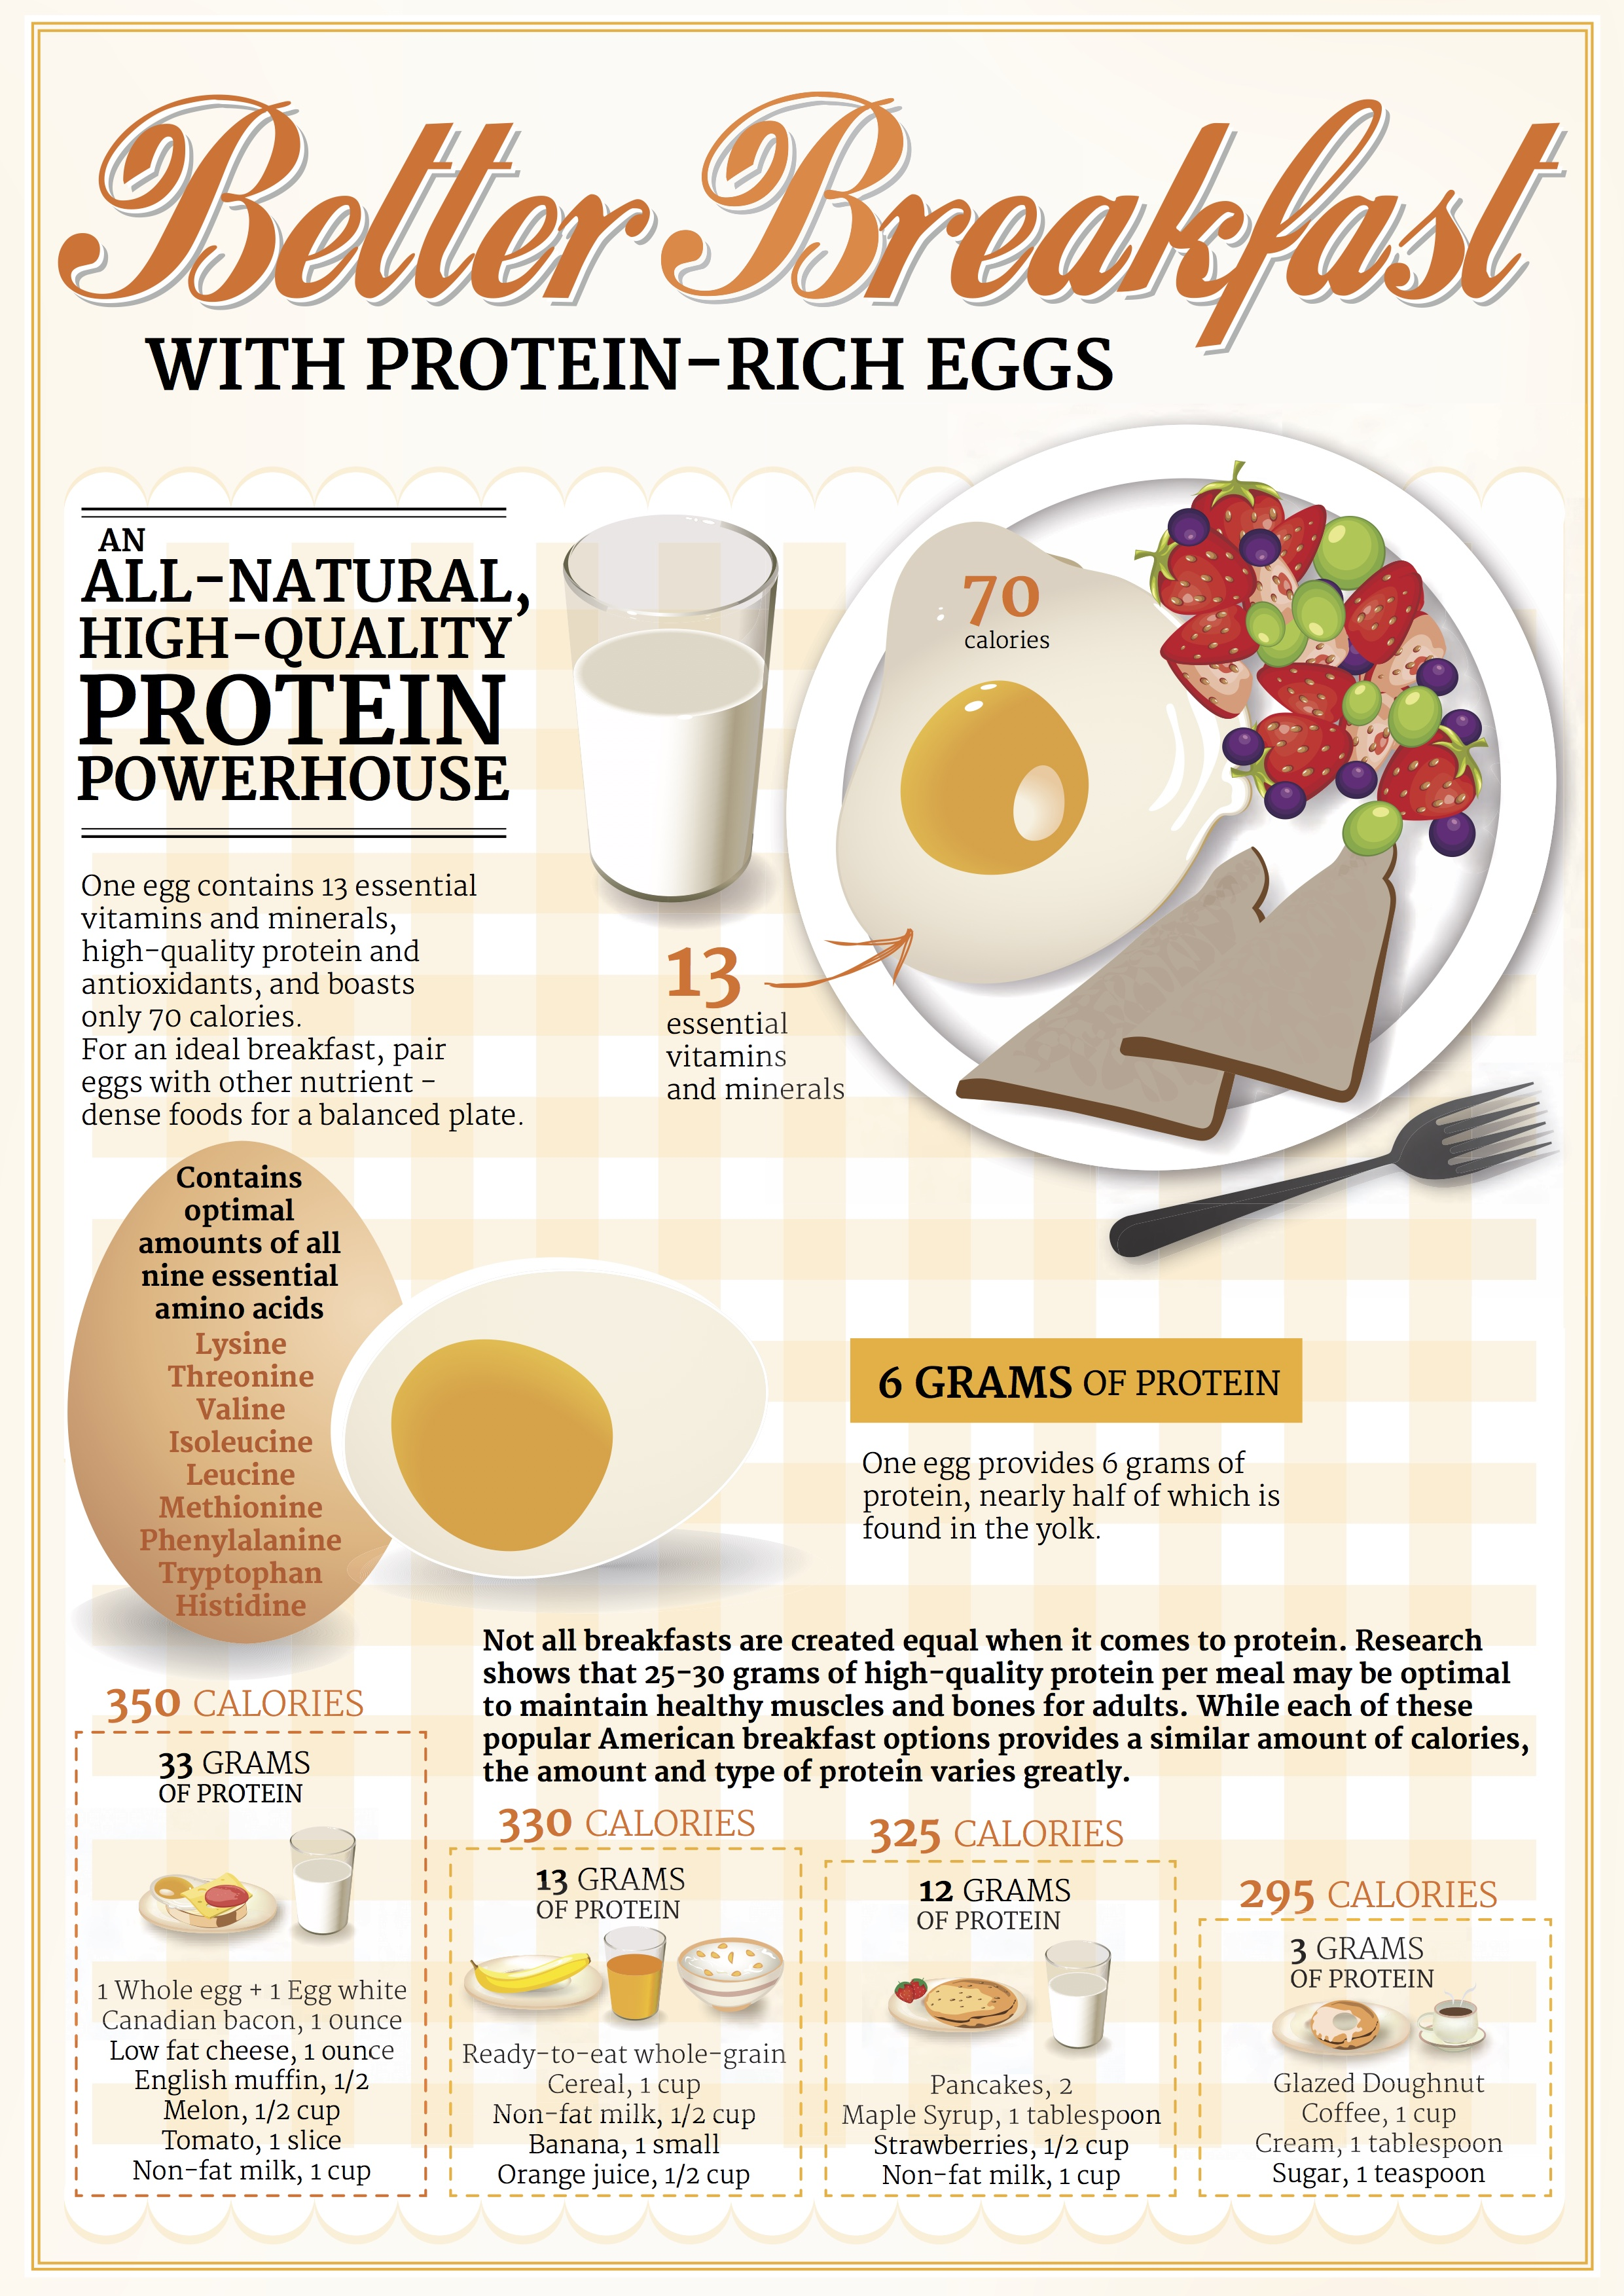 Have a Better Breakfast with Eggs